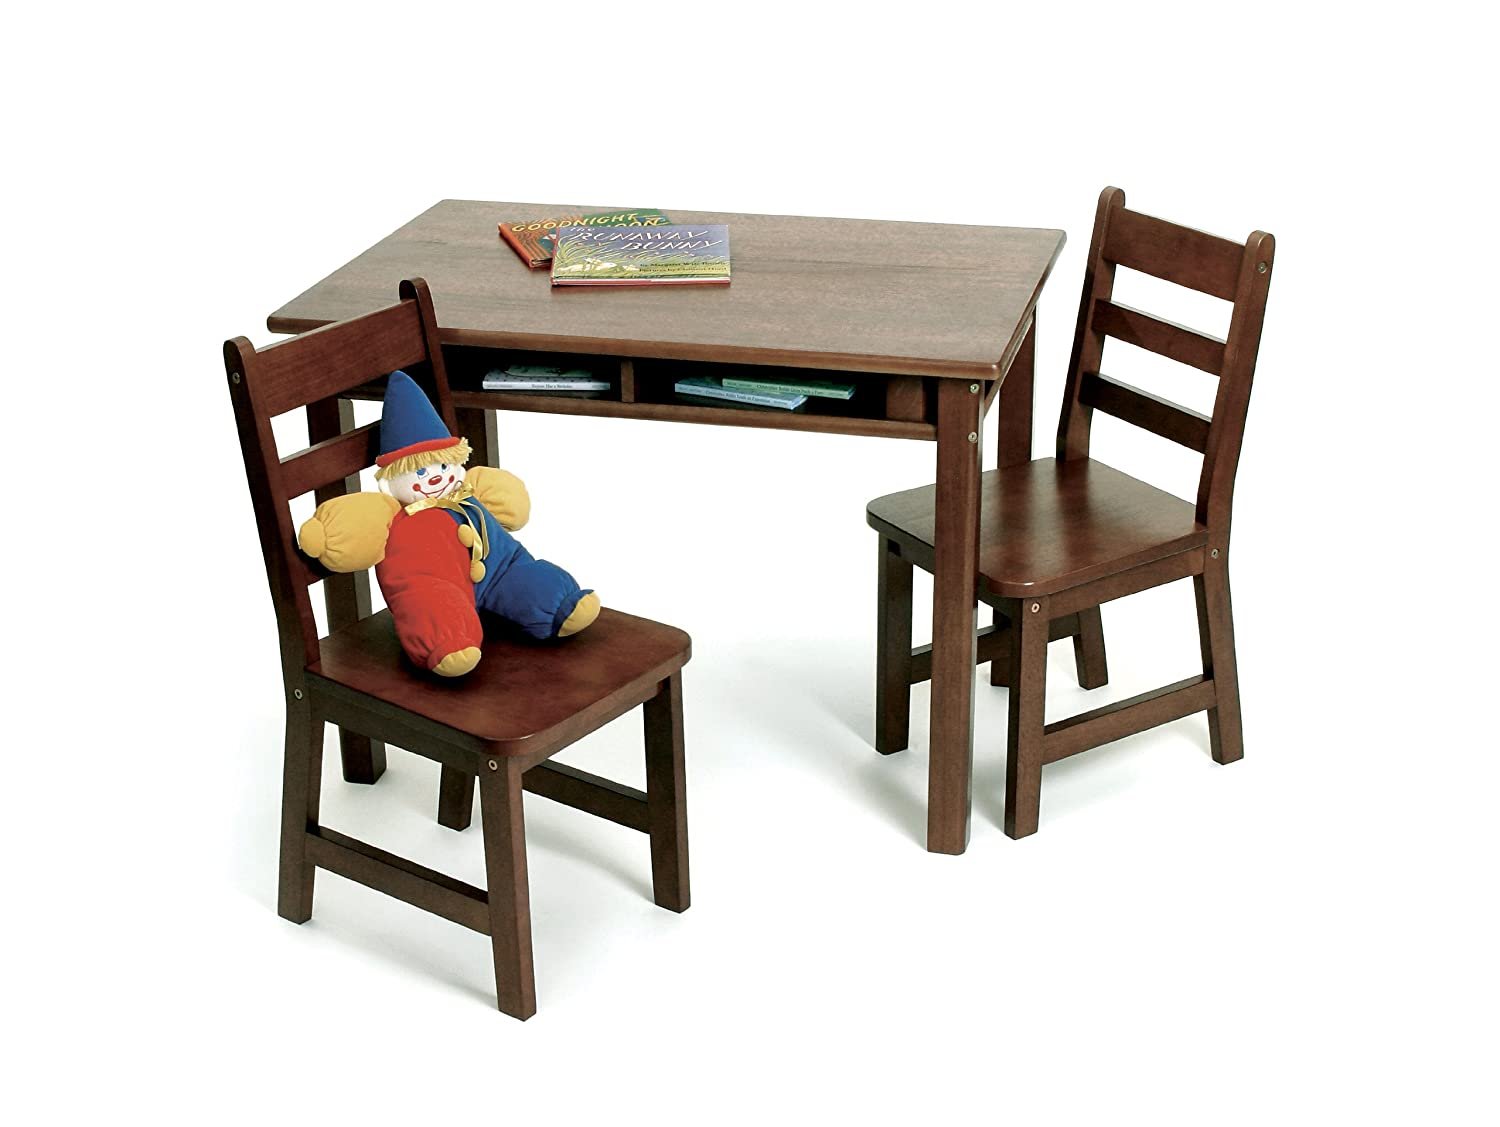 Amazon com  Lipper International 534WN Child s Rectangular Table with  Shelves and 2 Chairs  Walnut Finish  Kitchen   Dining. Amazon com  Lipper International 534WN Child s Rectangular Table